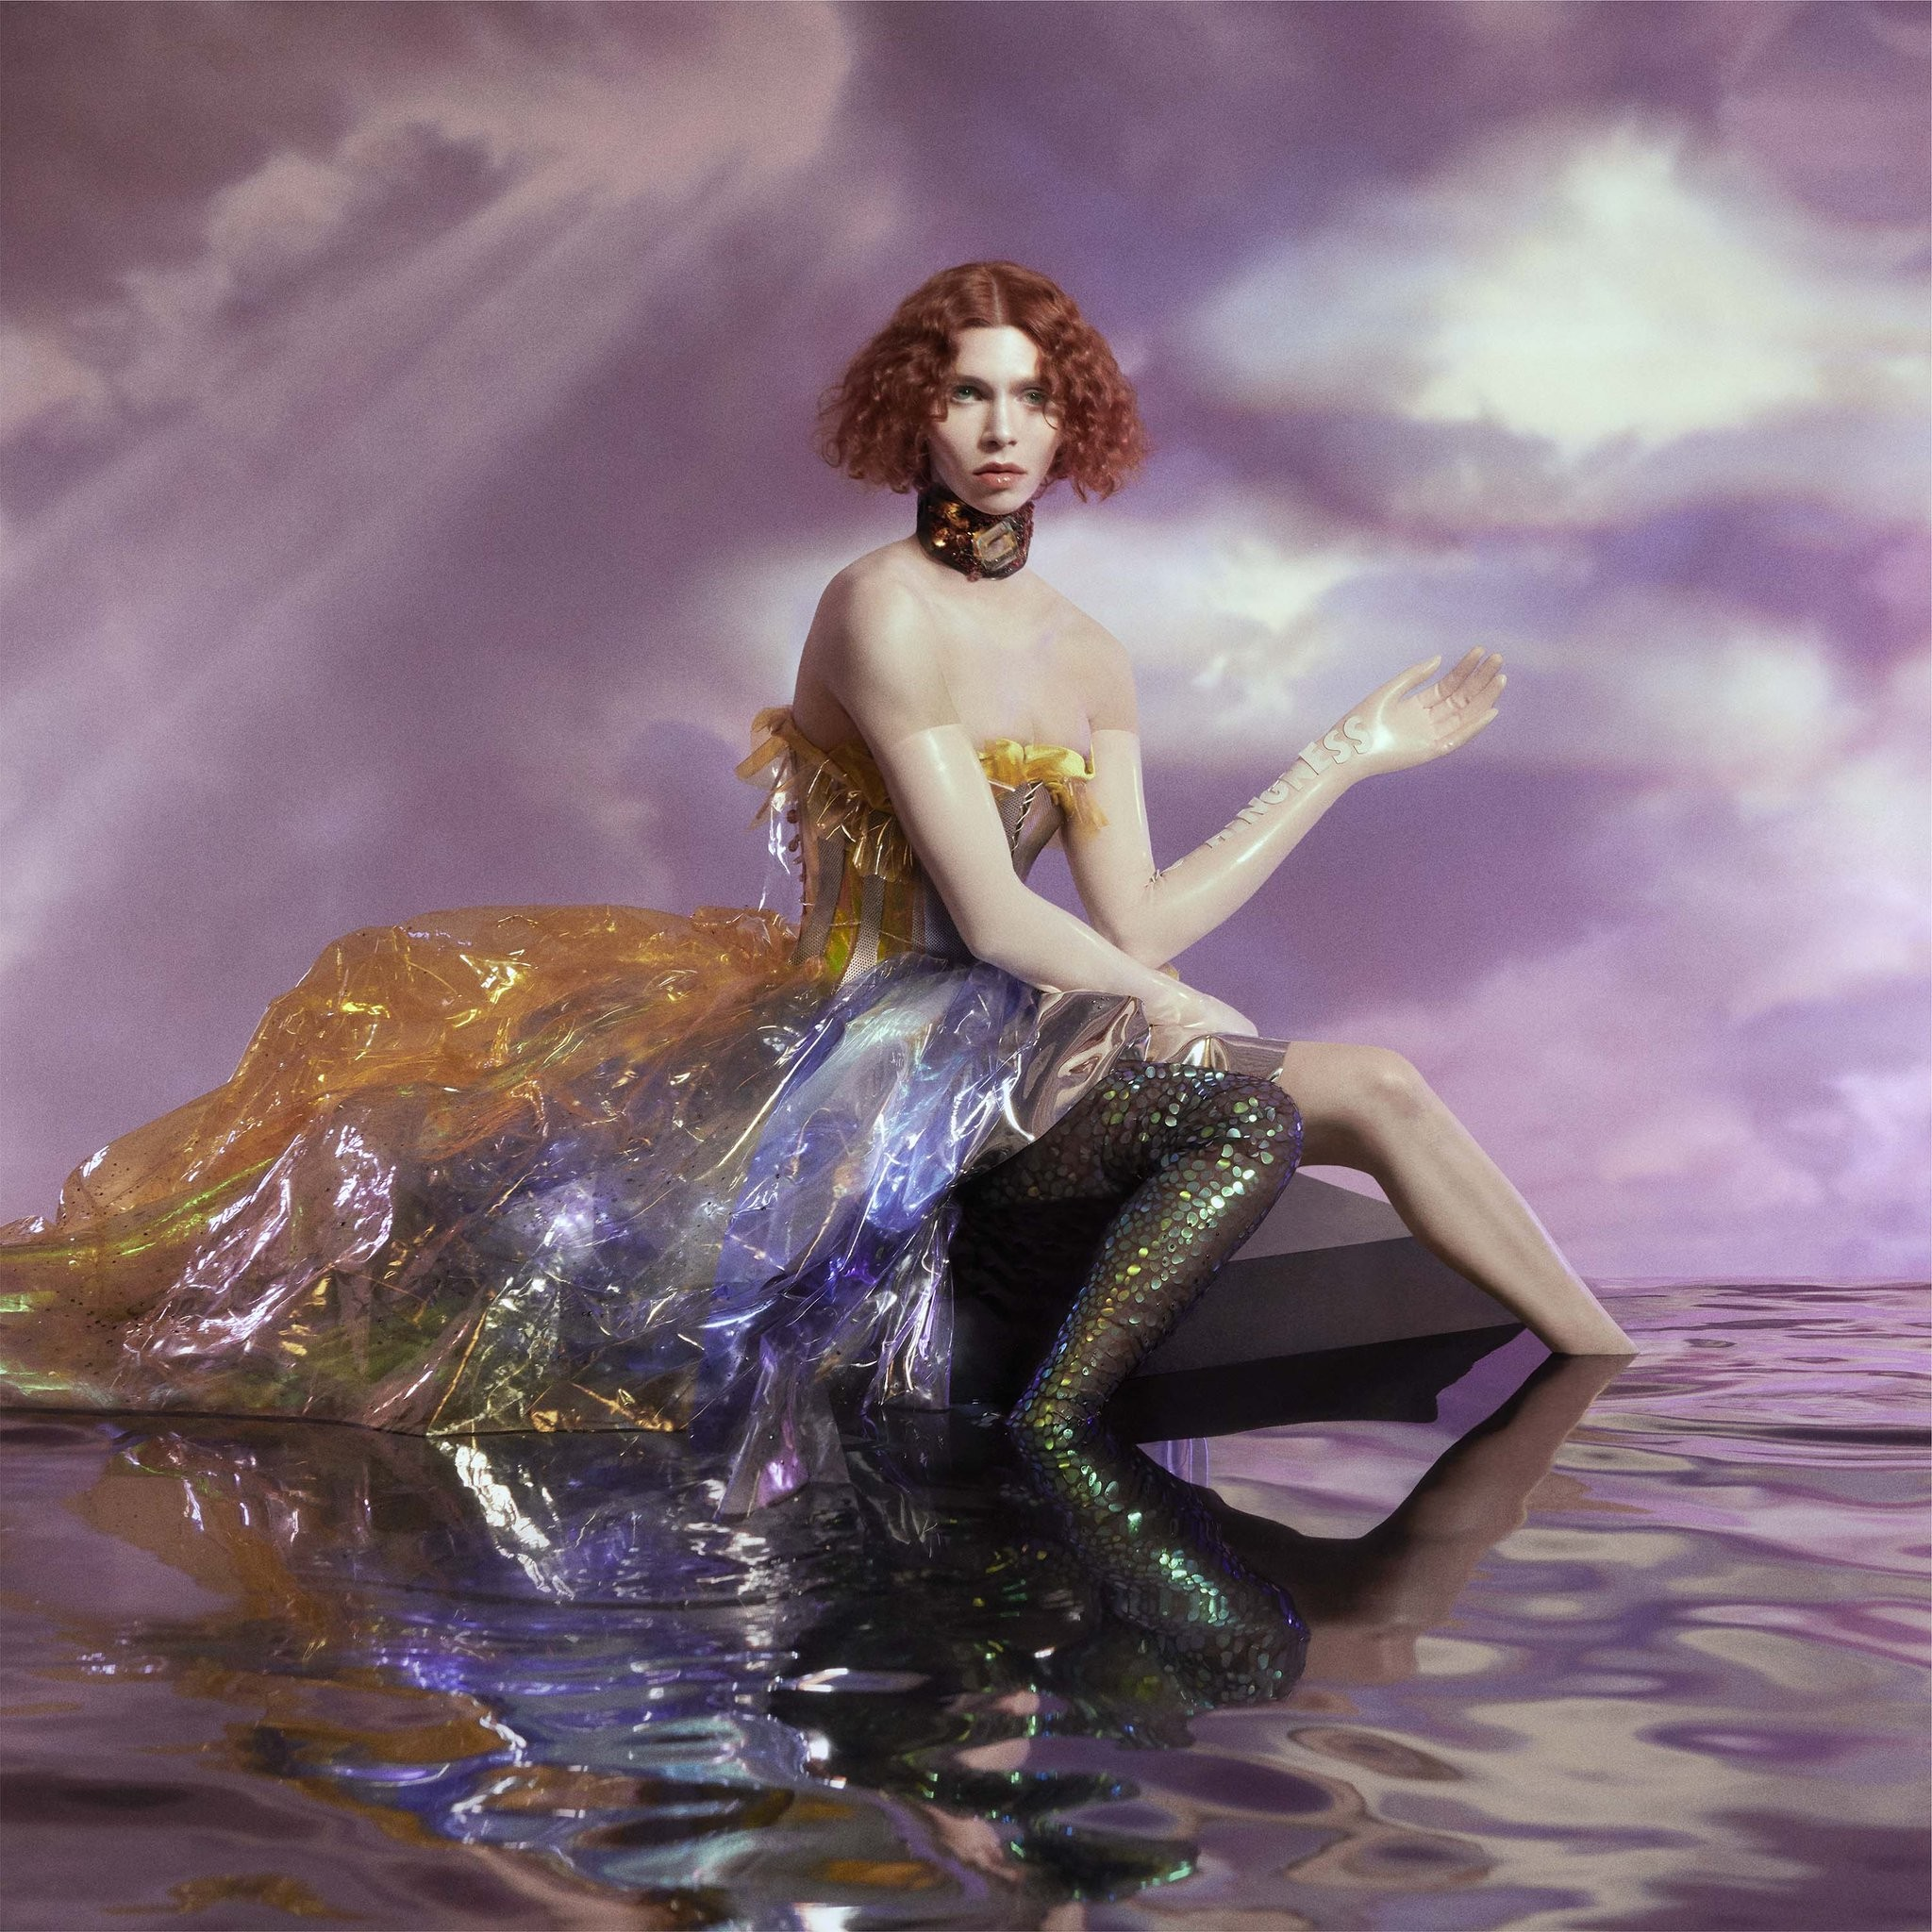 sophie-oil-of-every-pearls-un-sides-review